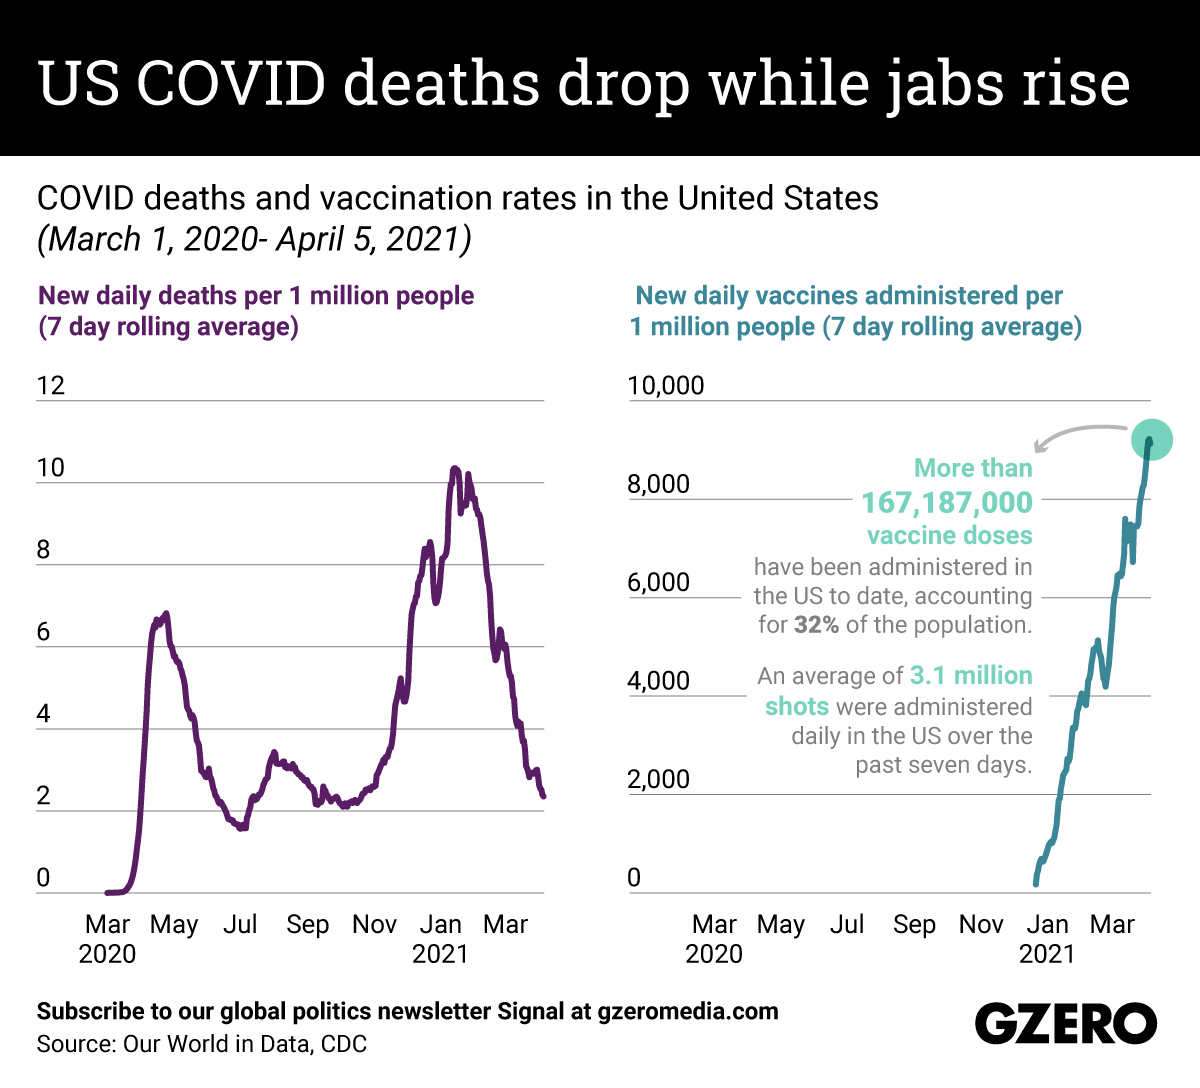 The Graphic Truth: US COVID deaths drop while jabs rise